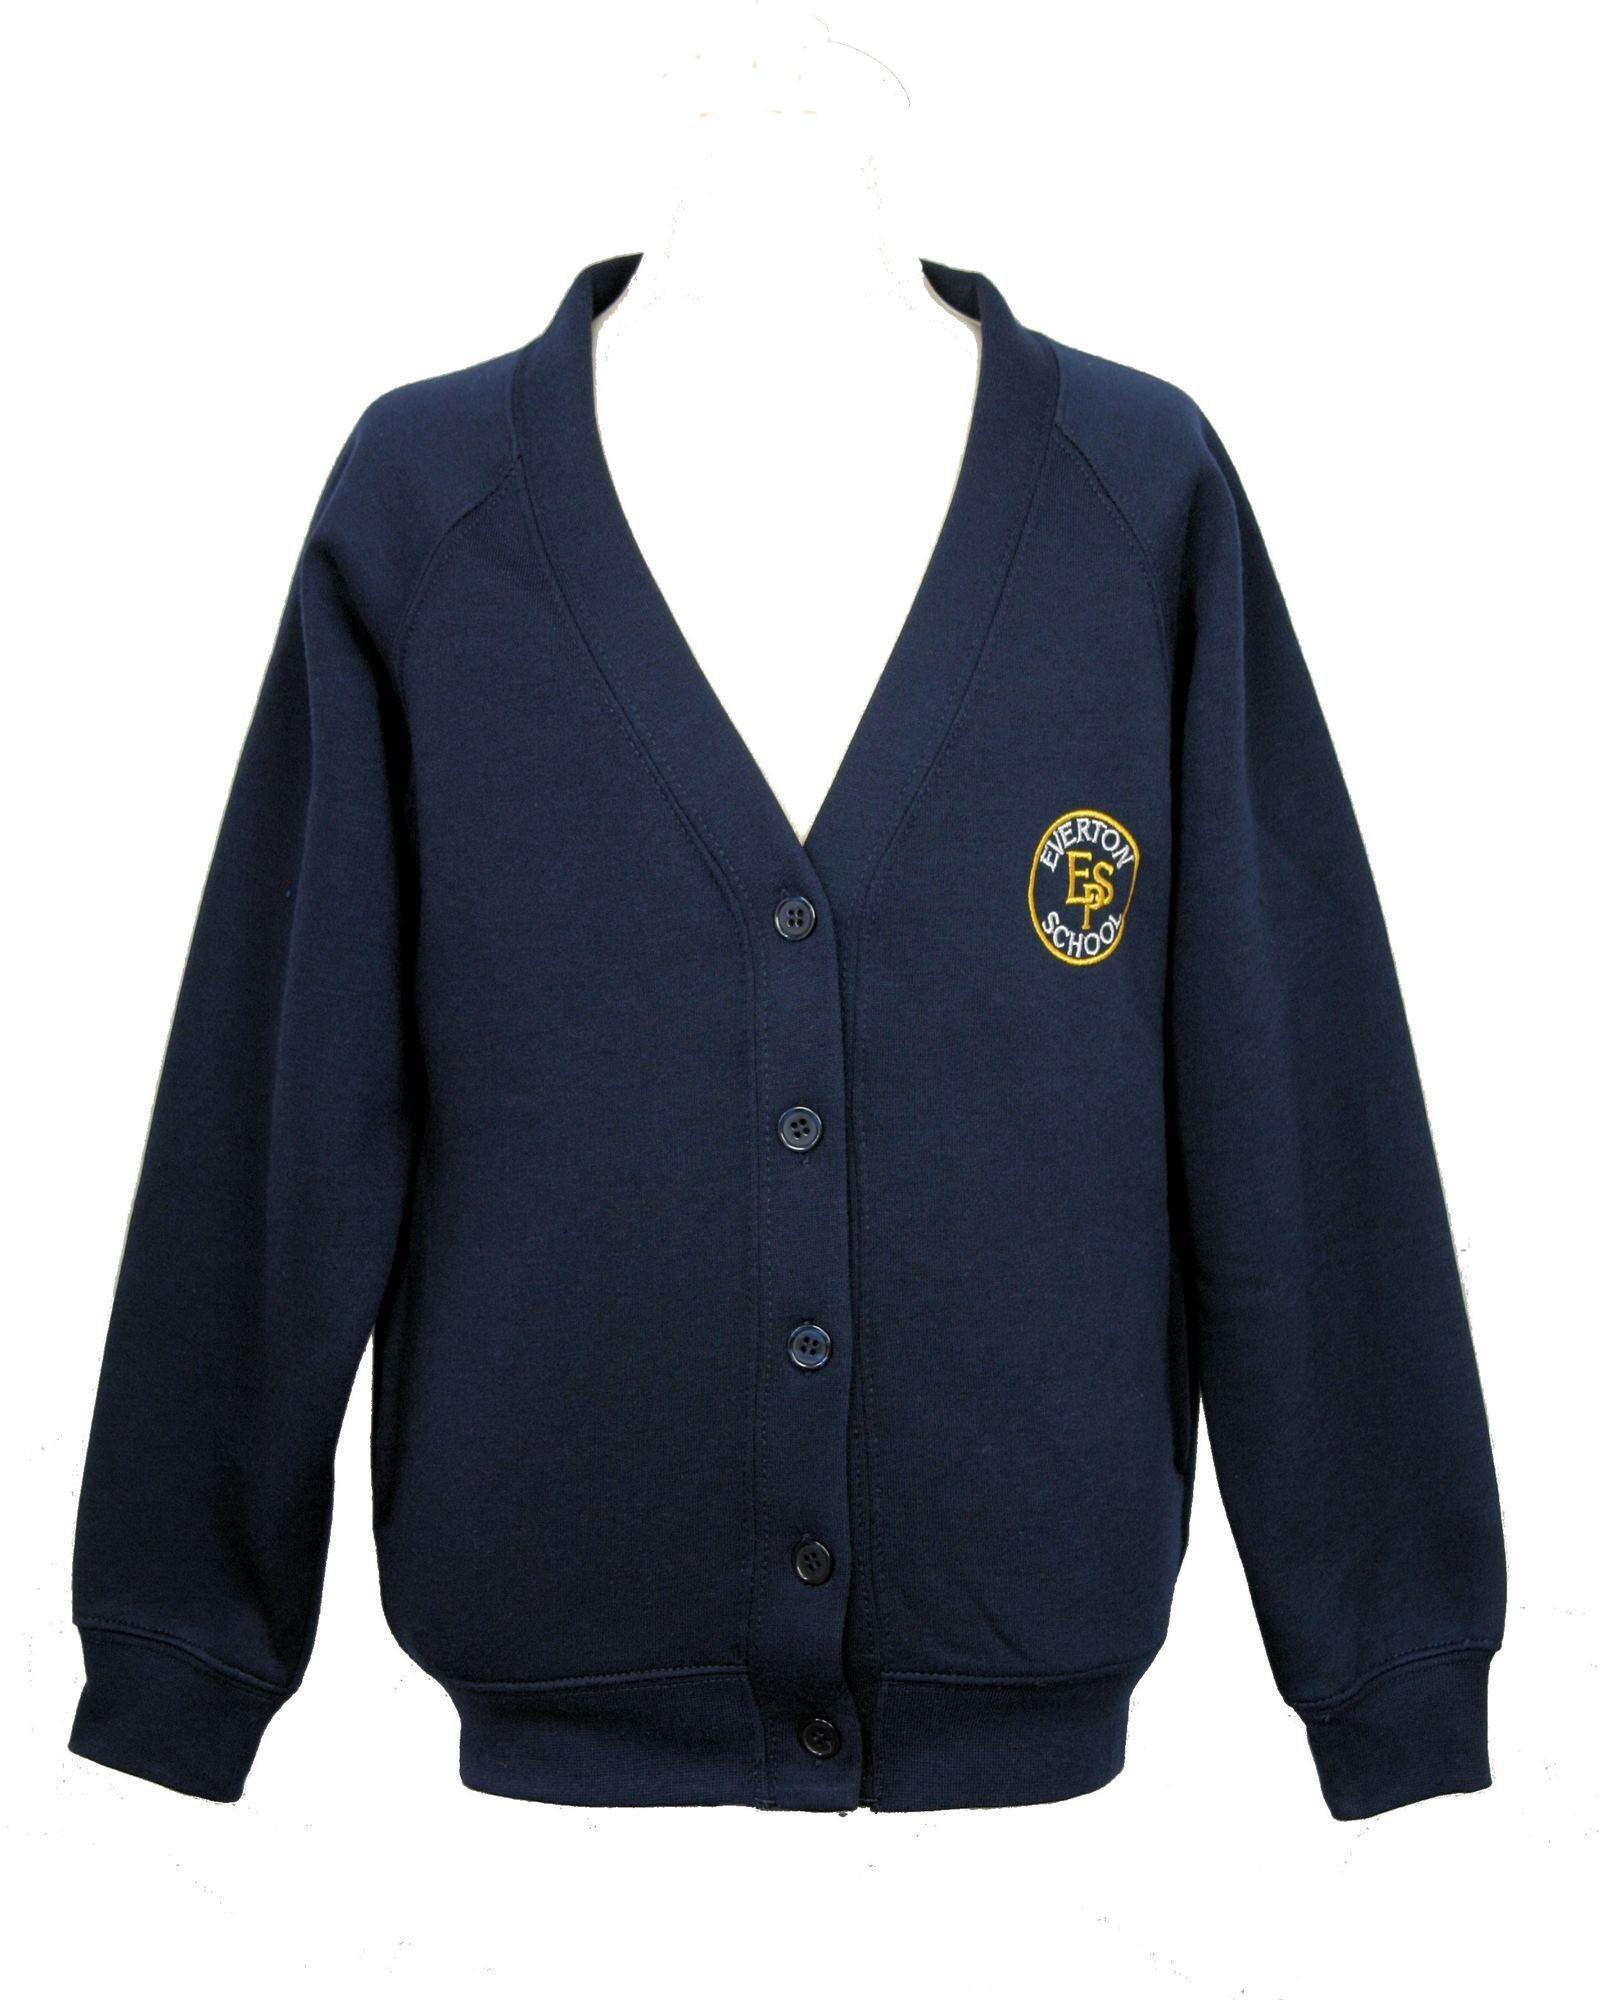 Everton Primary navy blue cardigan - K & H Sports